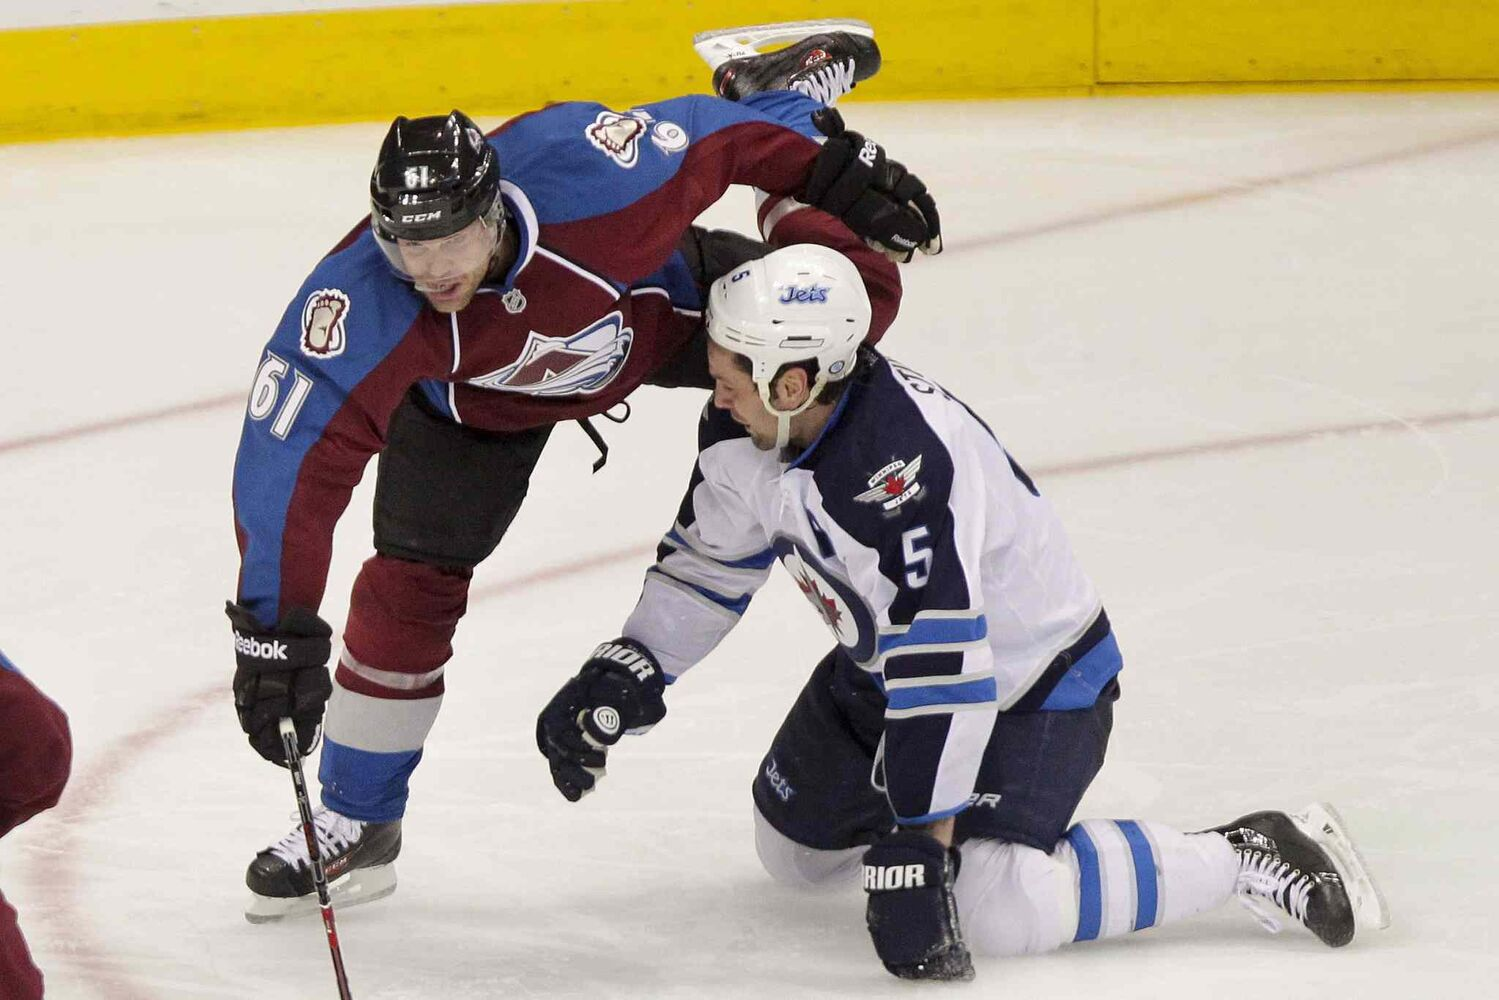 The Colorado Avalanche's Andre Benoit collides with Winnipeg Jets defenceman Mark Stuart during the third period.